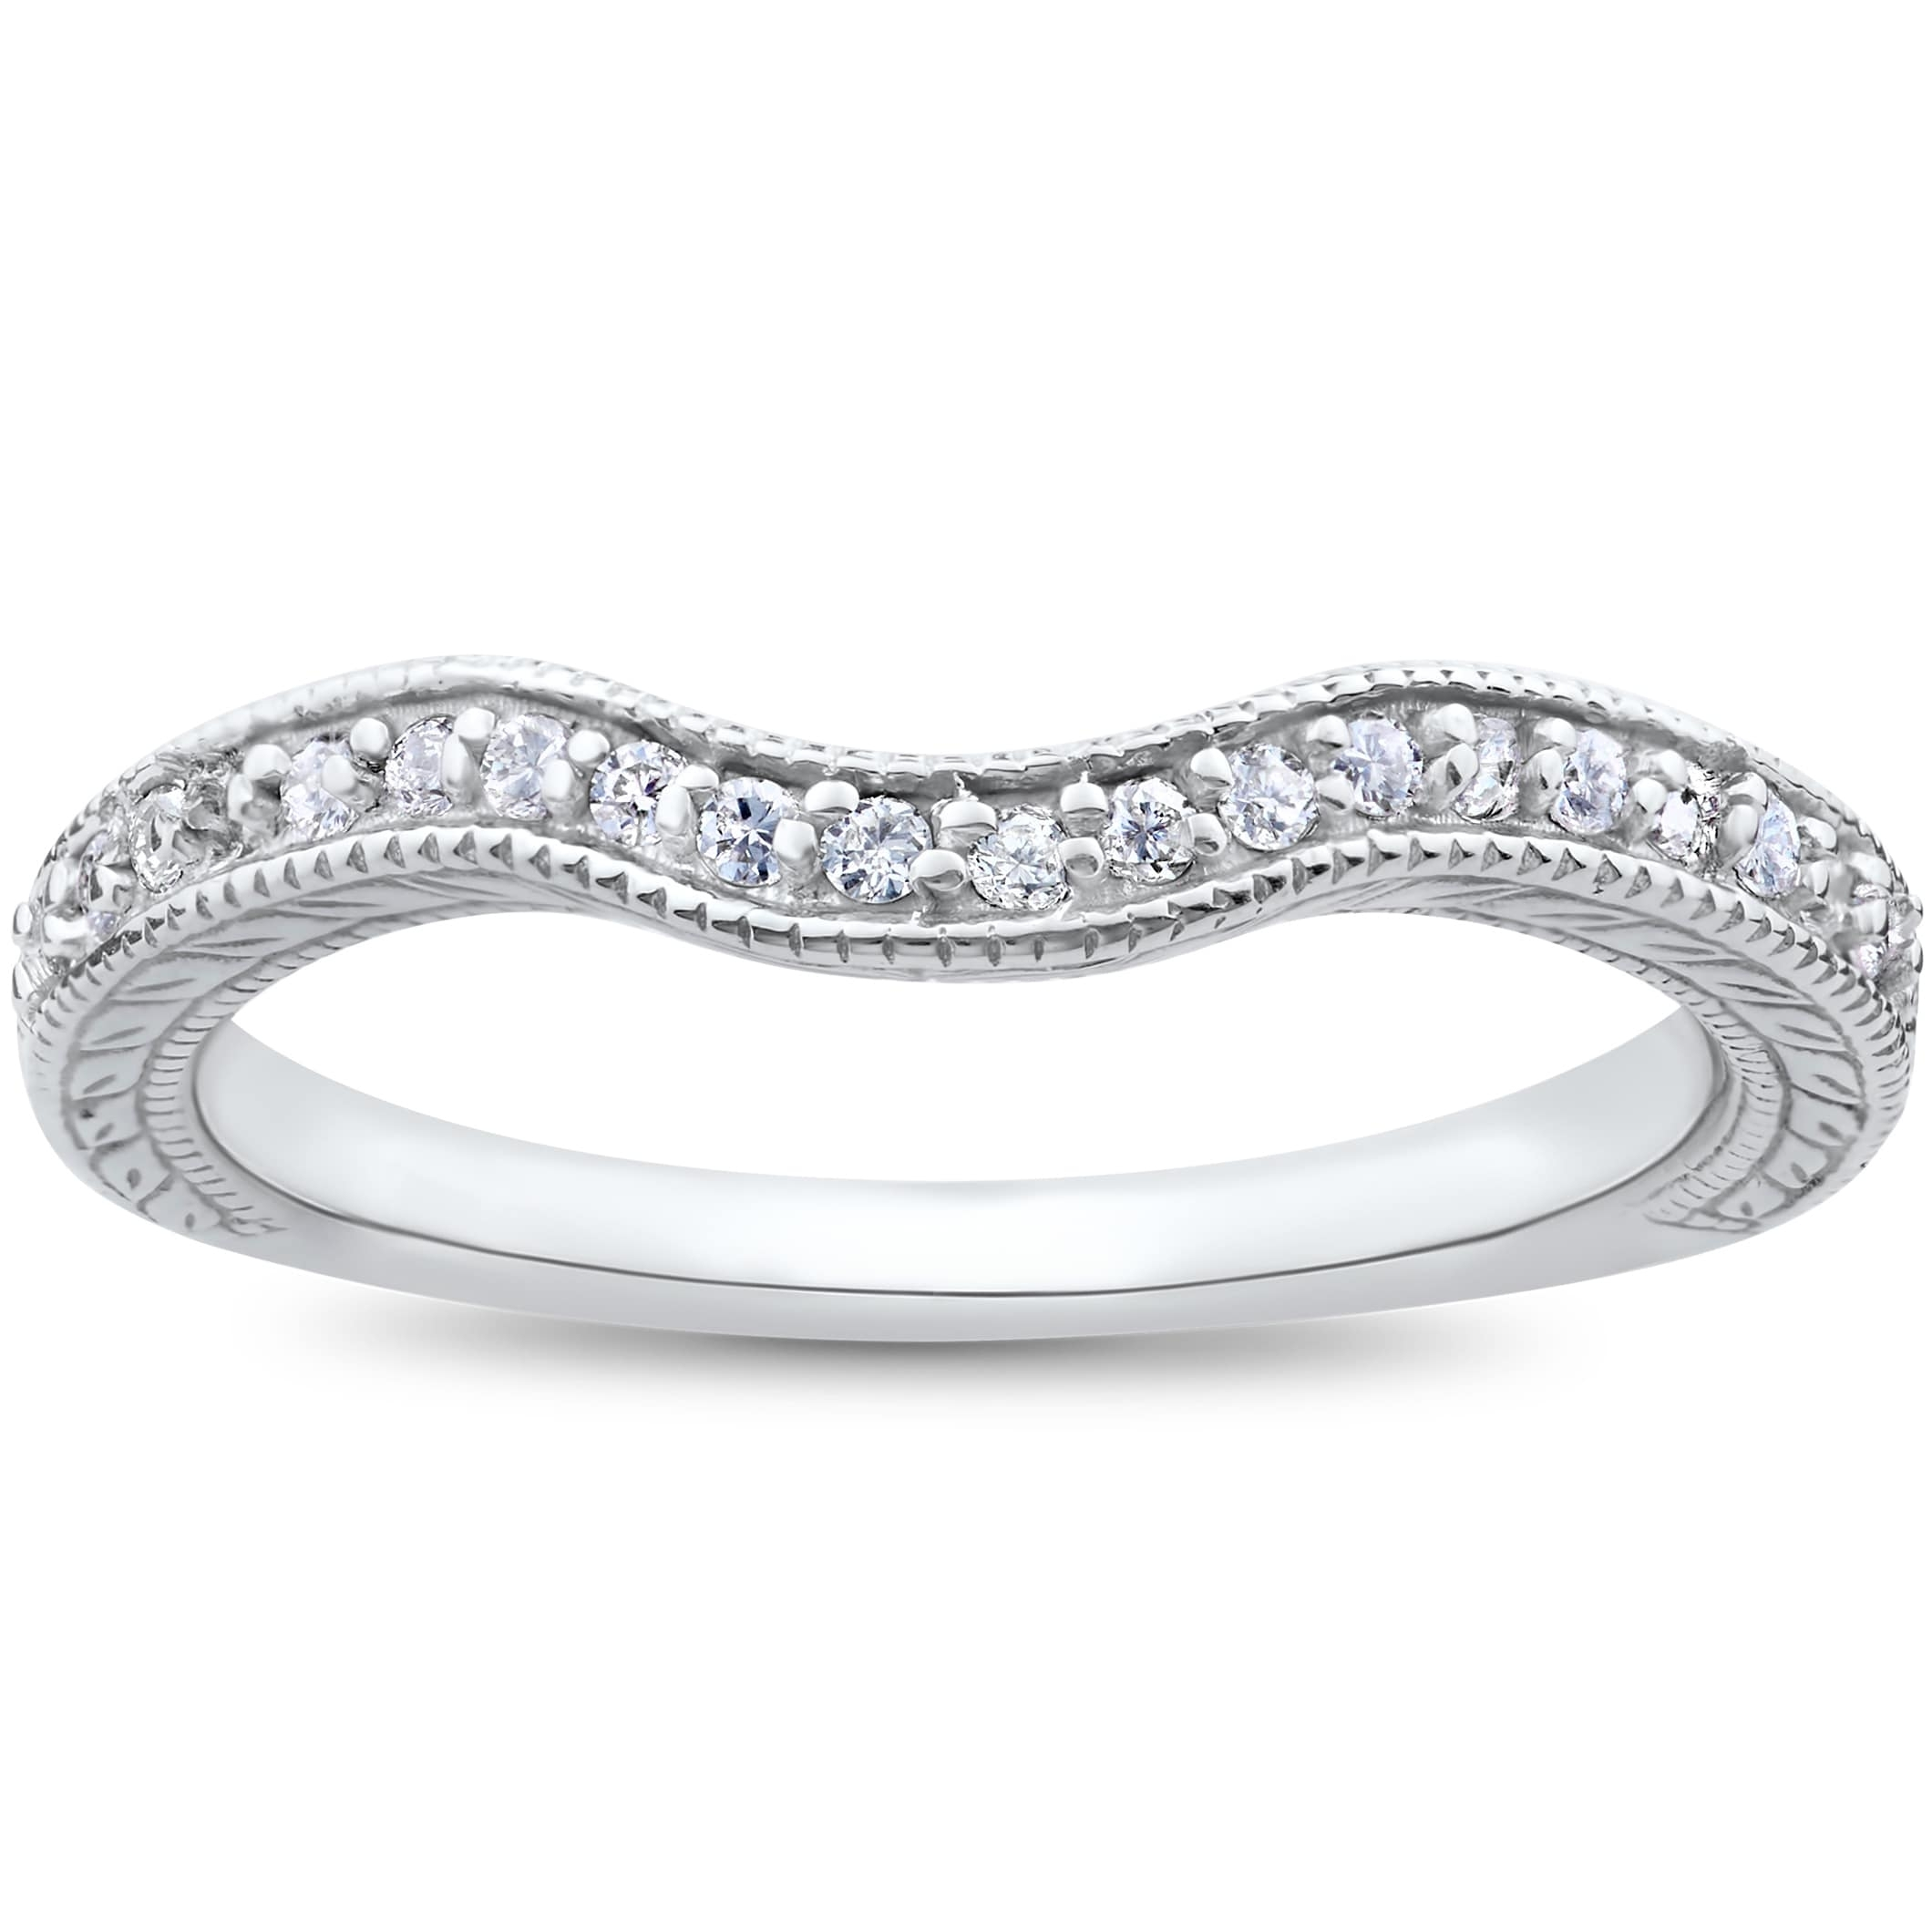 Shop 14K White Gold 1/6Ct Vintage Curved Diamond Contour Wedding With Most Popular Diamond Contour Wedding Bands In 14K White Gold (View 15 of 15)